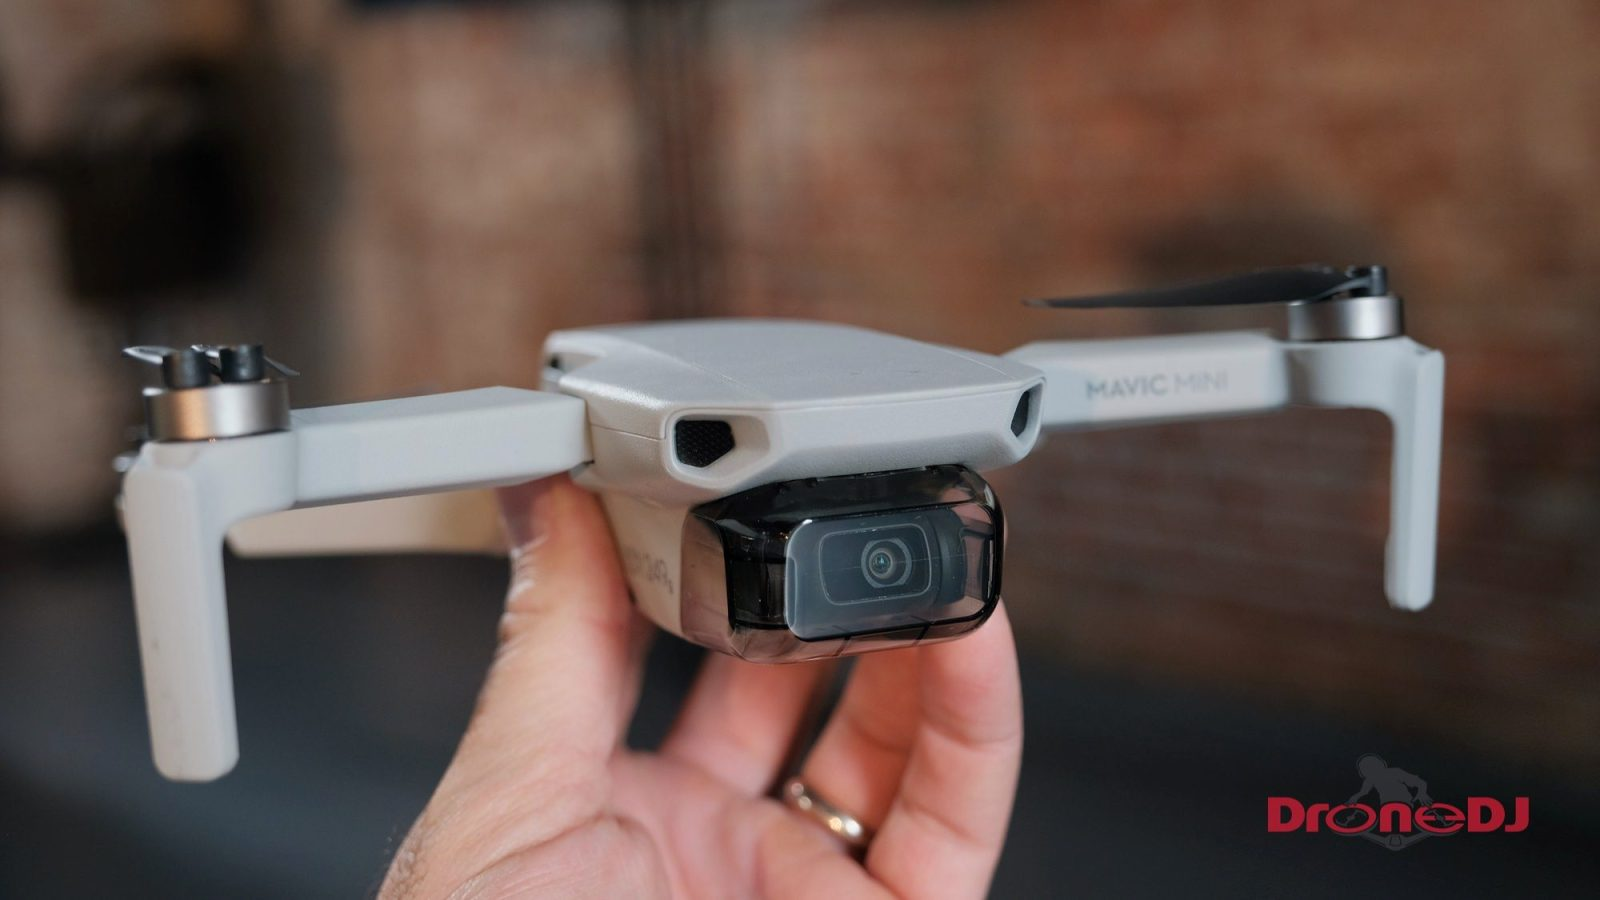 Apple turns to drone and aviation specialist for Washington DC lobbying efforts